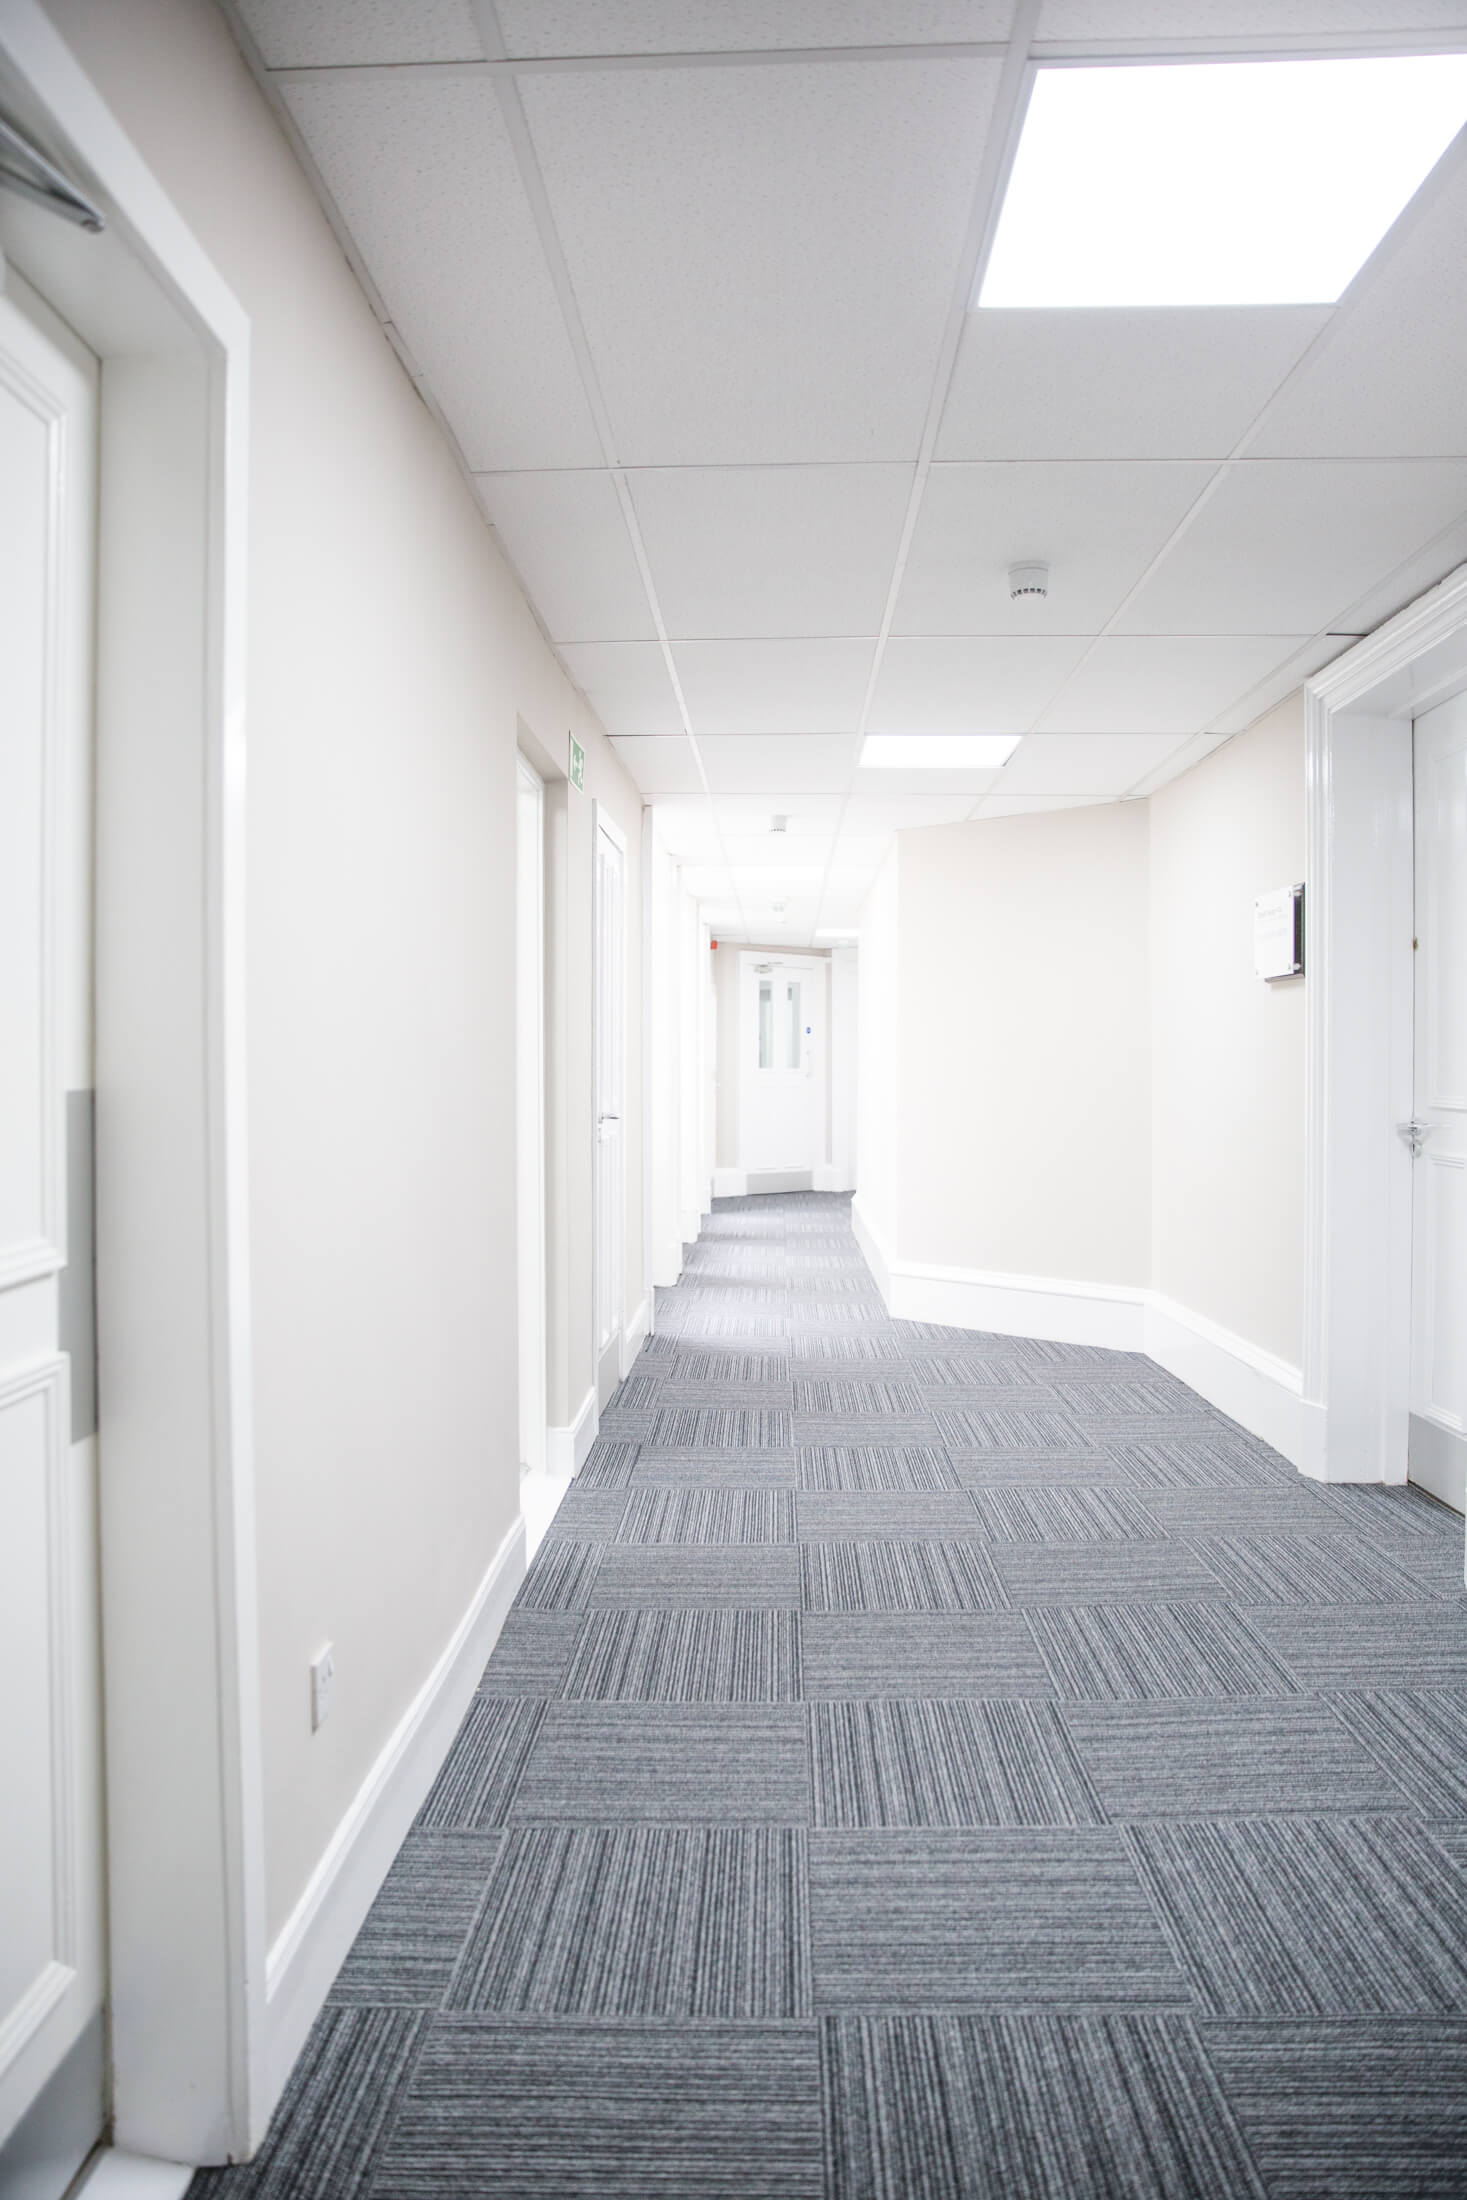 Restored by FIX LTD, hallway in the office complex in Glasgow